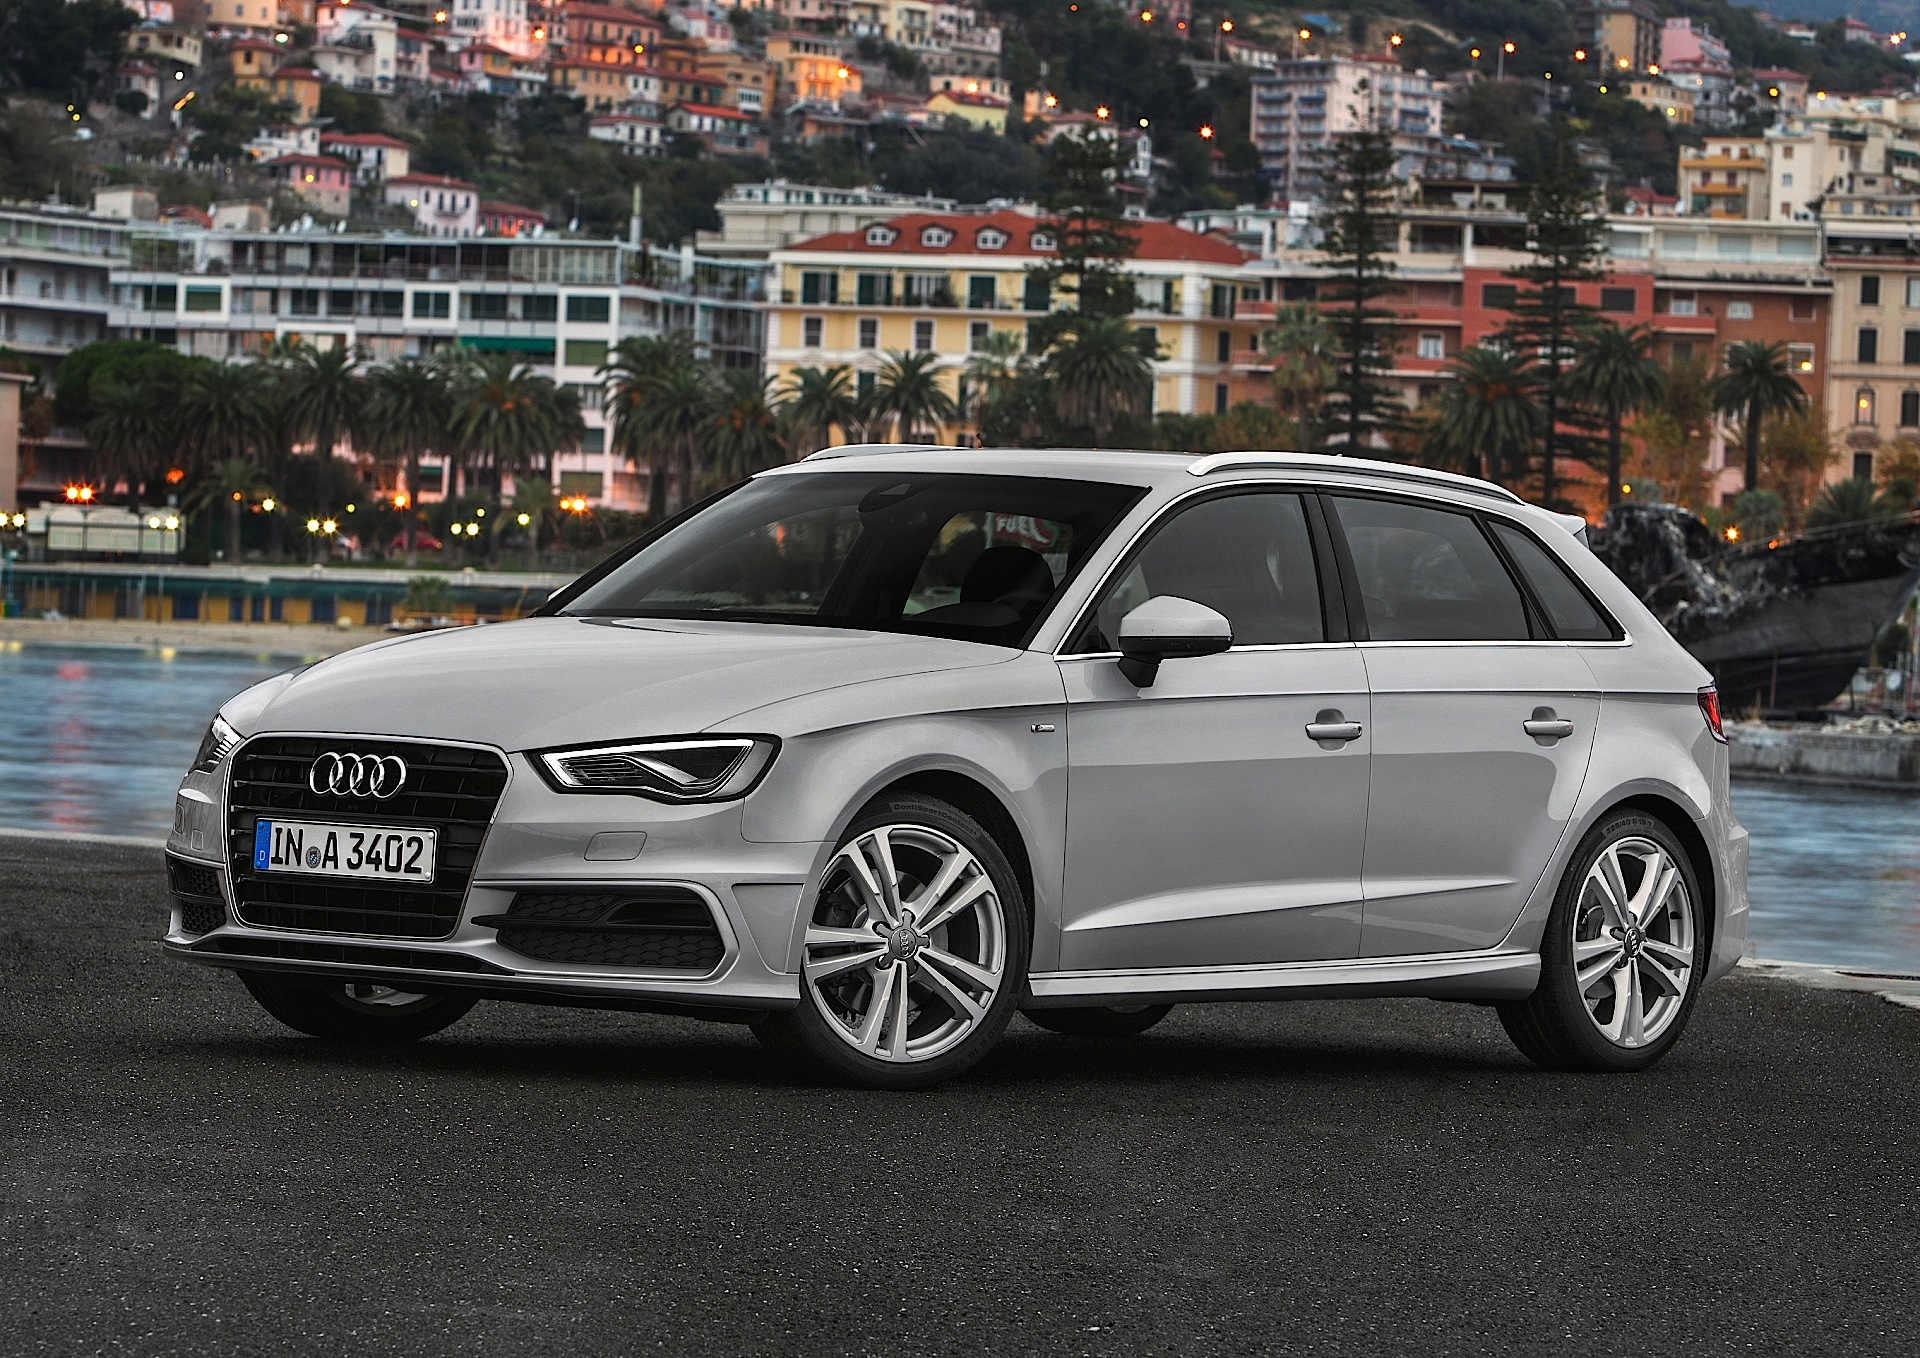 audi a3 sportback 5 doors specs photos 2012 2013 2014 2015 2016 2017 2018 2019. Black Bedroom Furniture Sets. Home Design Ideas